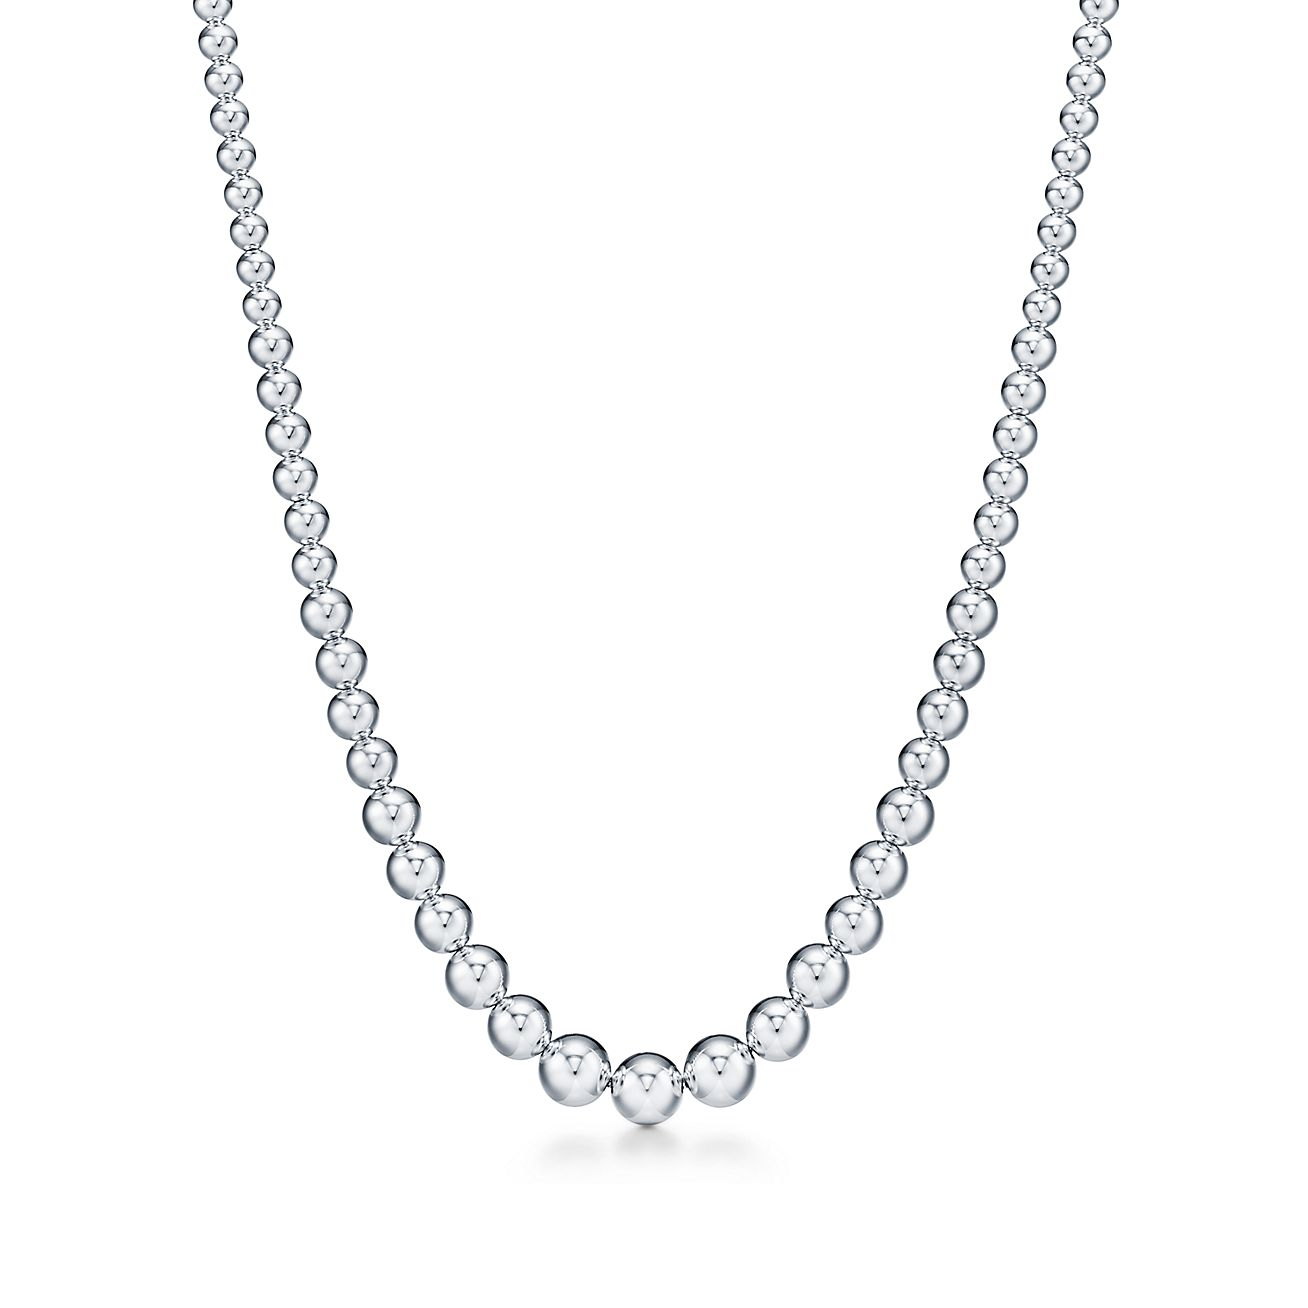 Latest Beads NecklaceAdjustable Threads Ball NecklaceUnique Silver Bead NecklaceWomen Fashion Long NecklaceHandmade Thread Necklace Gift